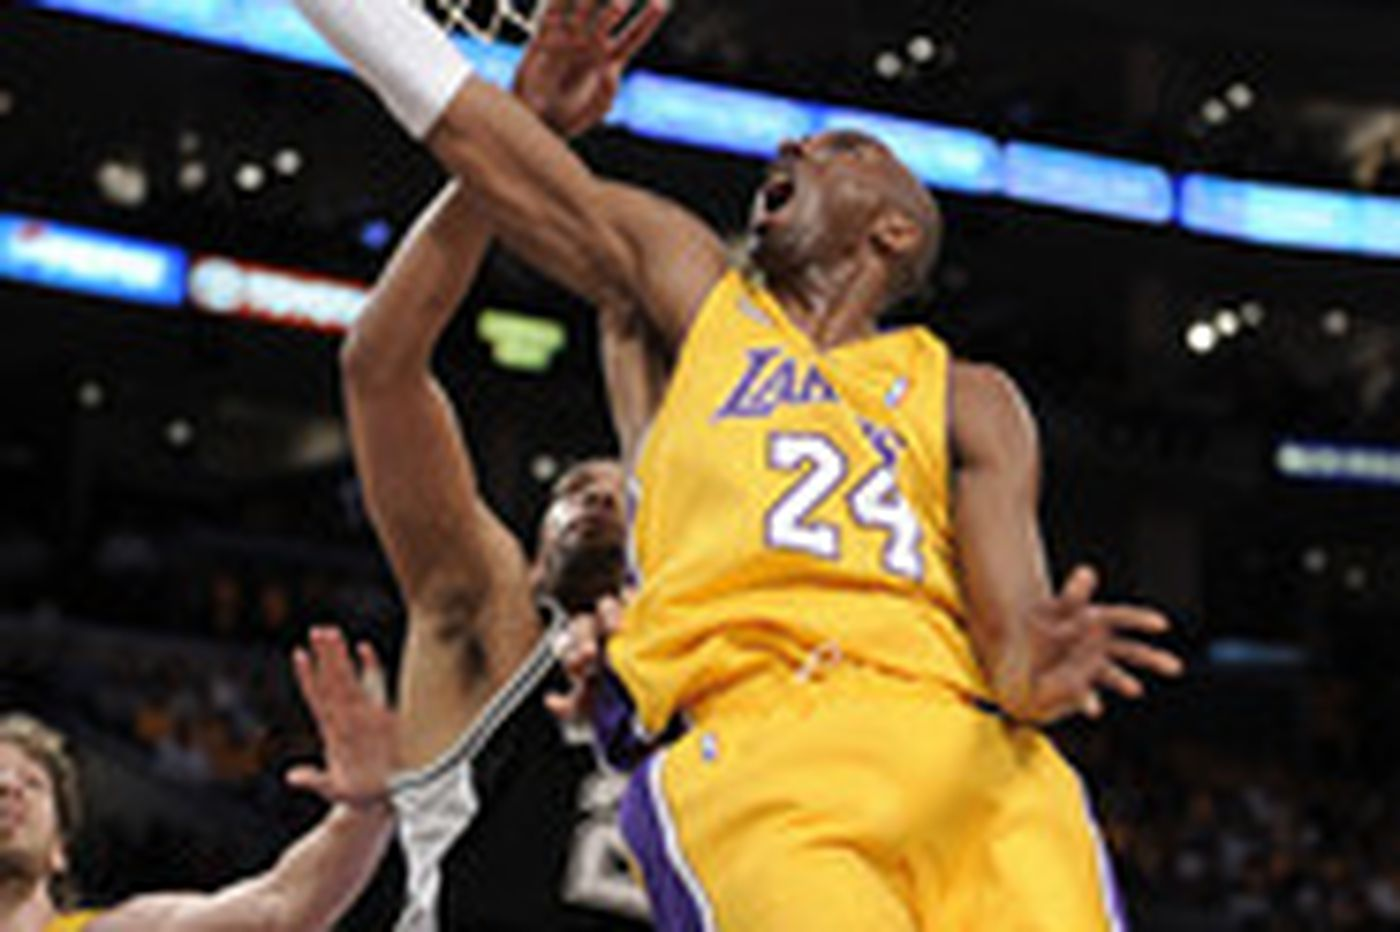 NBA: Lakers eliminate Spurs, move on to NBA Finals